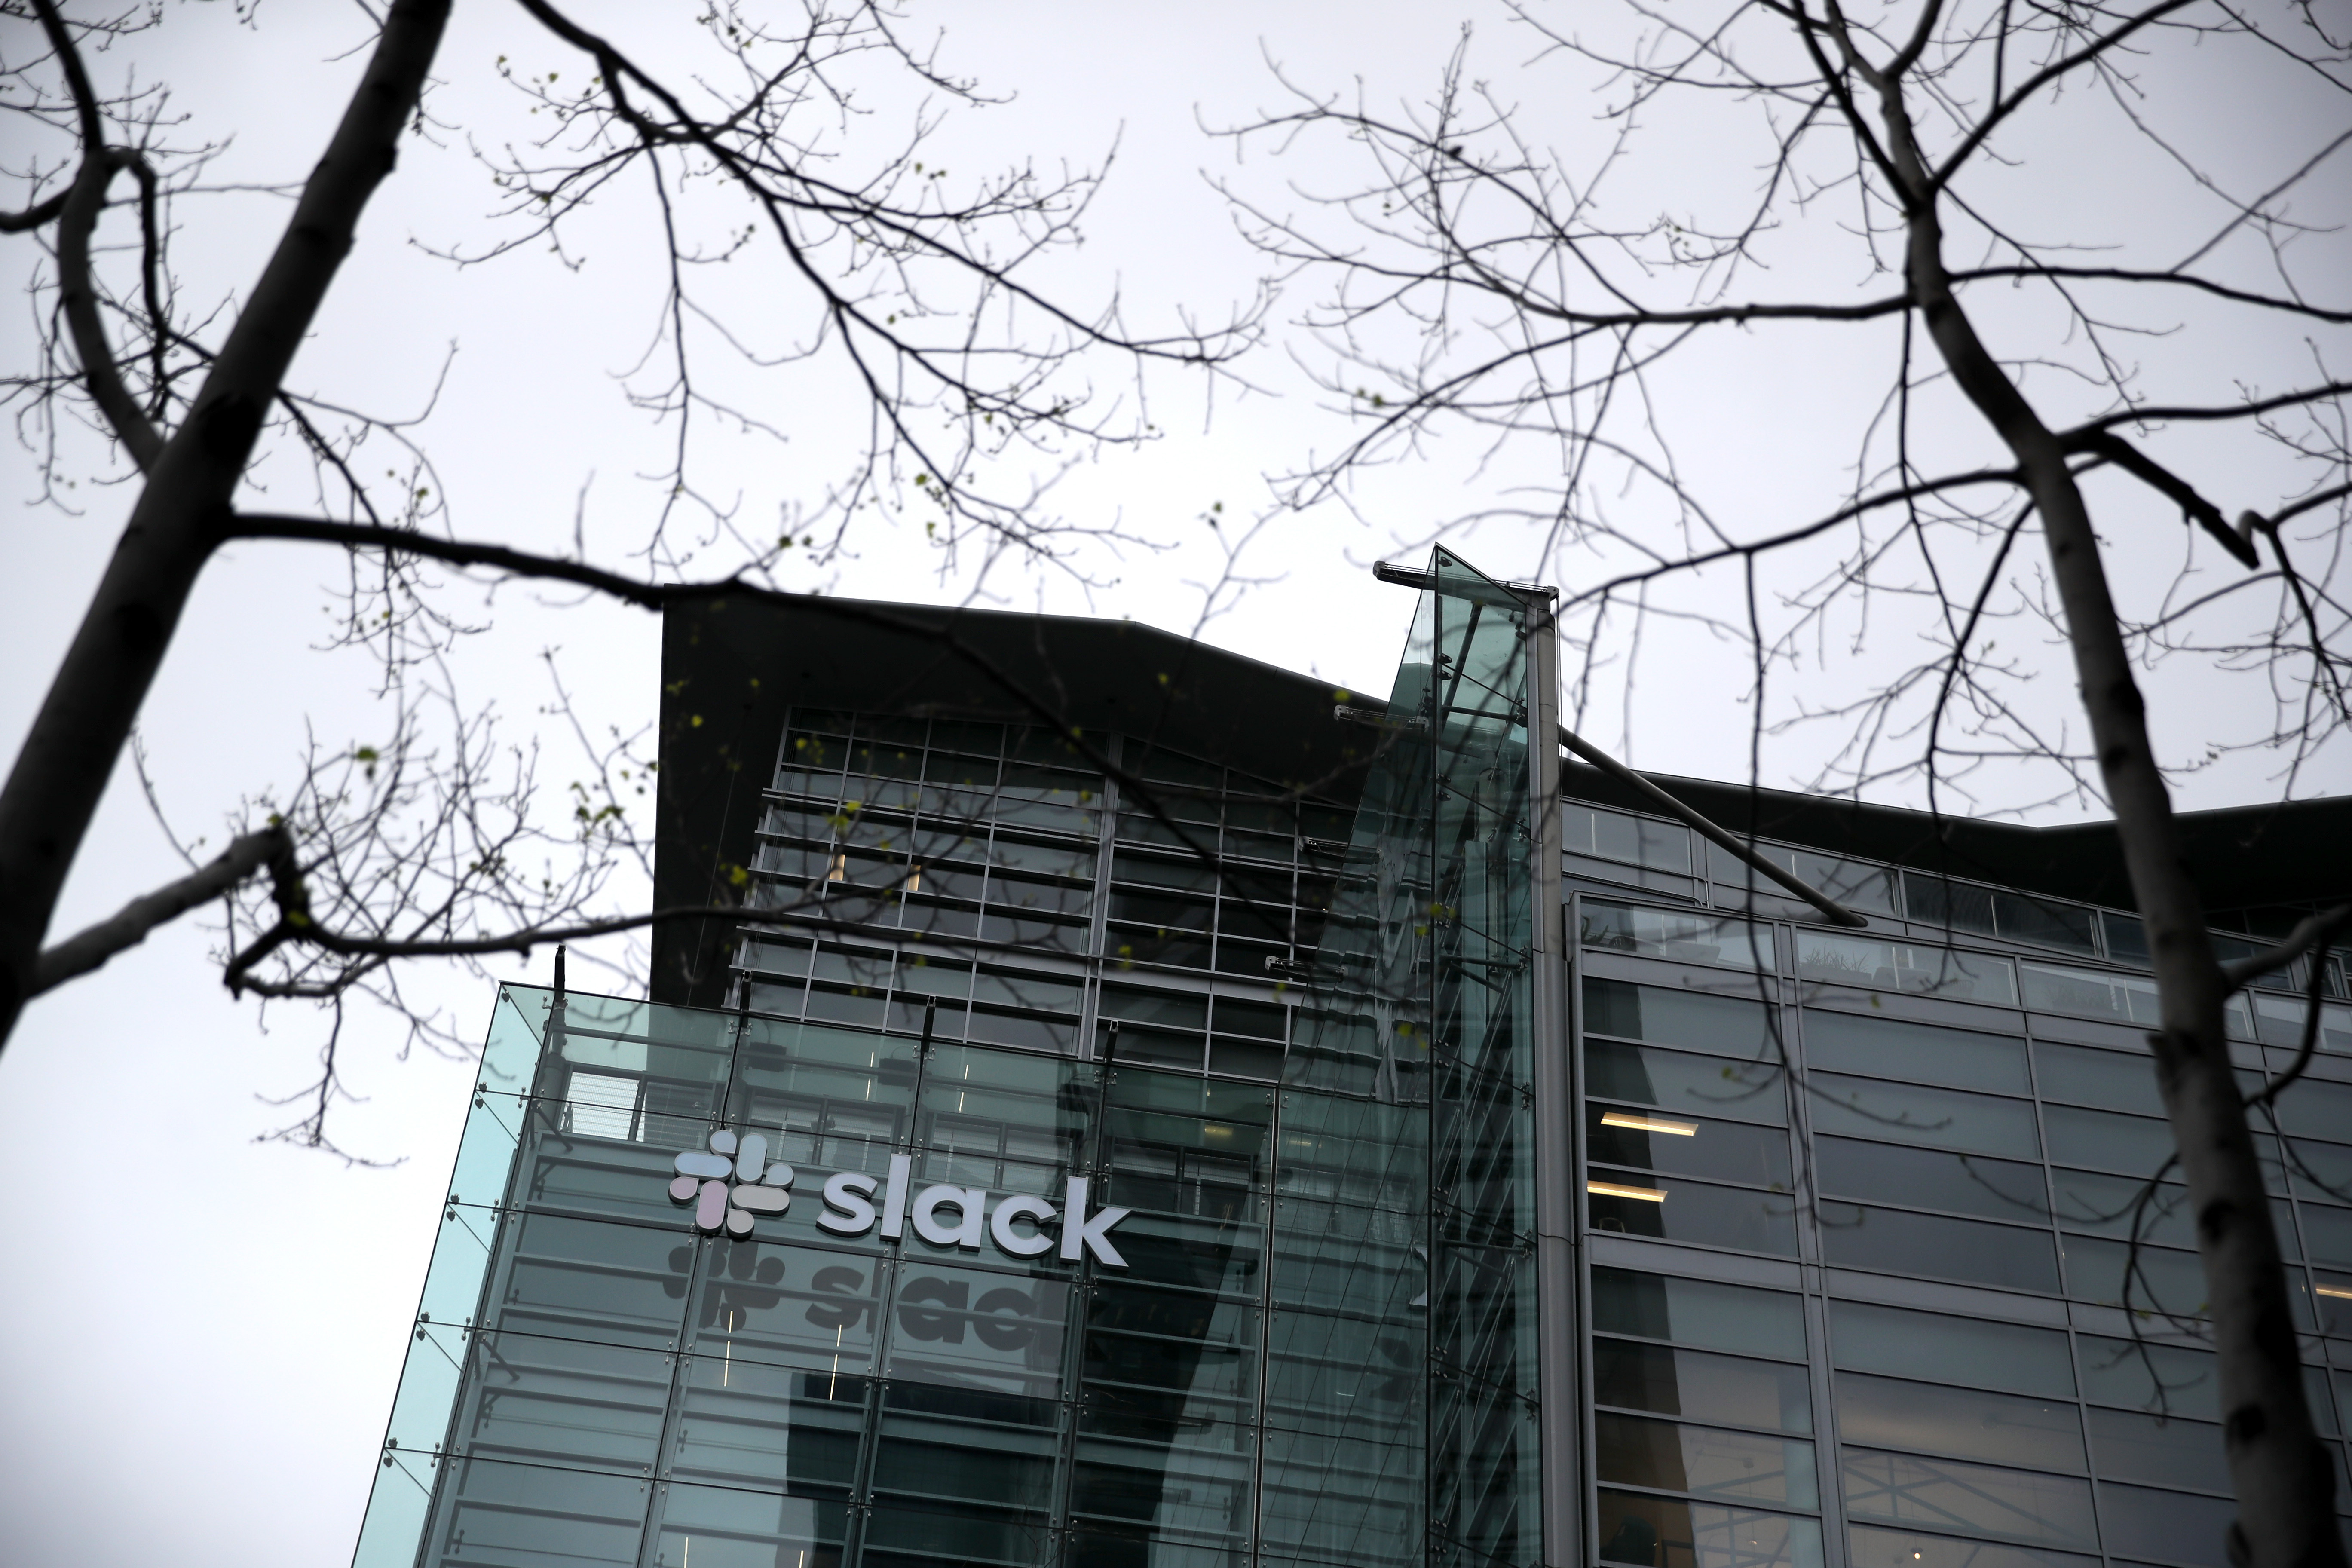 Workplace-Messaging Giant Slack To List Shares On NY Stock Exchange